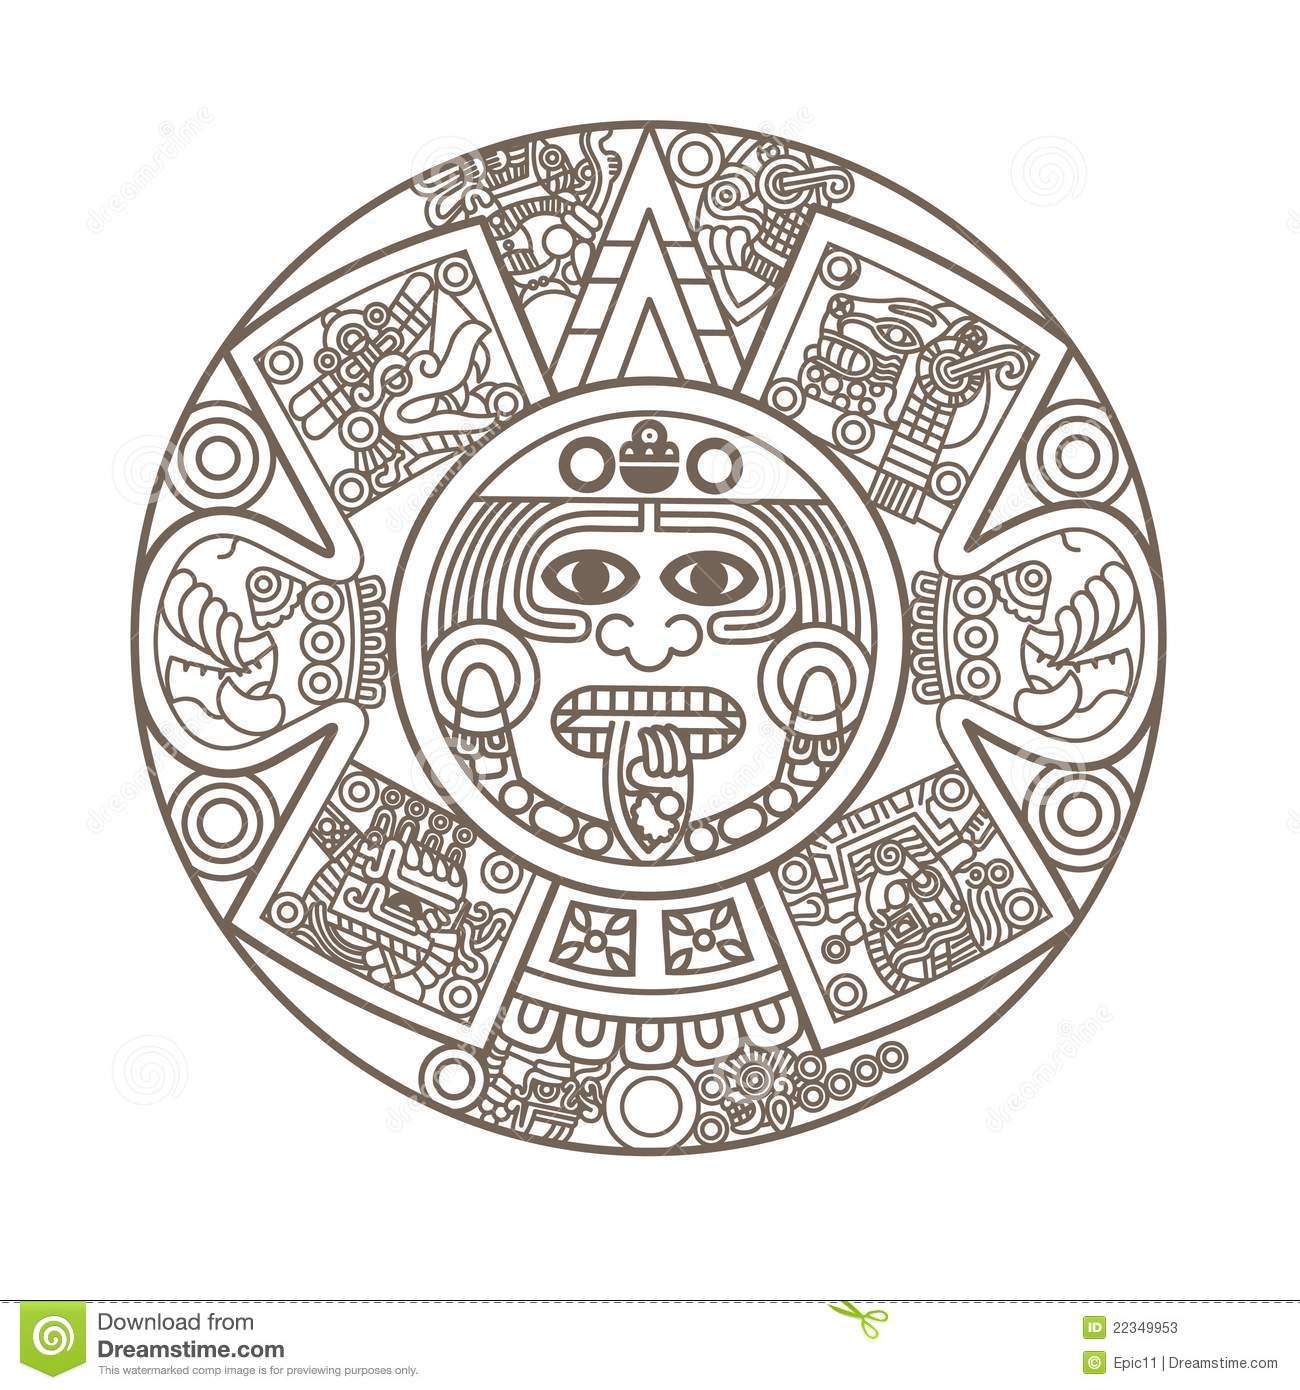 Stylized Aztec Calendar Stock Vector Illustration Of Culture 22349953